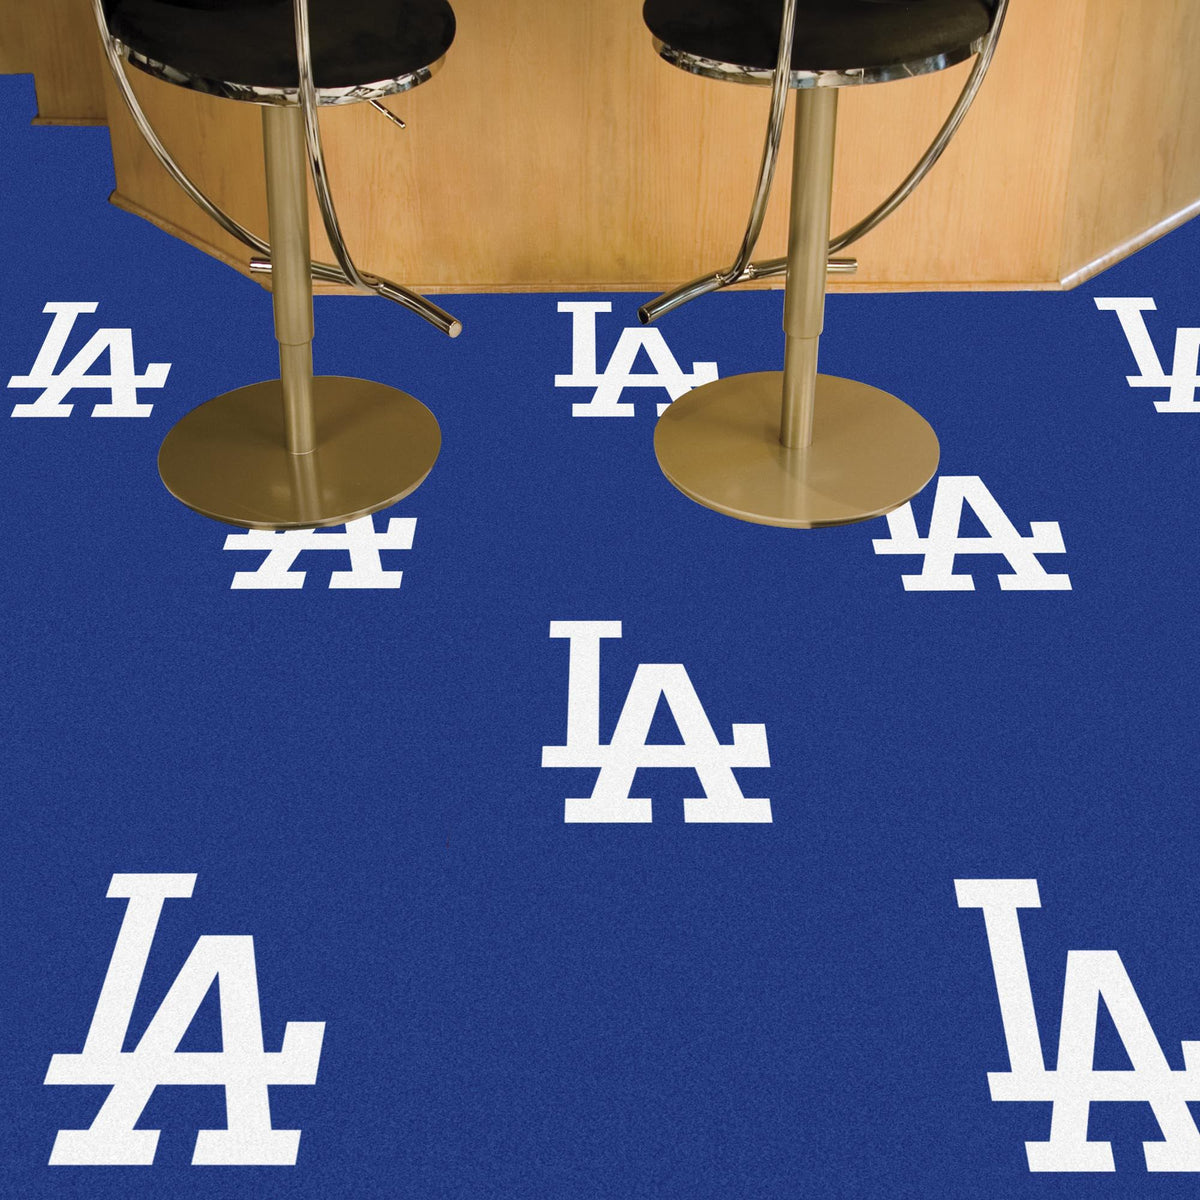 MLB - Team Carpet Tiles MLB Mats, Carpet Tile Flooring, Team Carpet Tiles, MLB, Home Fan Mats Los Angeles Dodgers 2